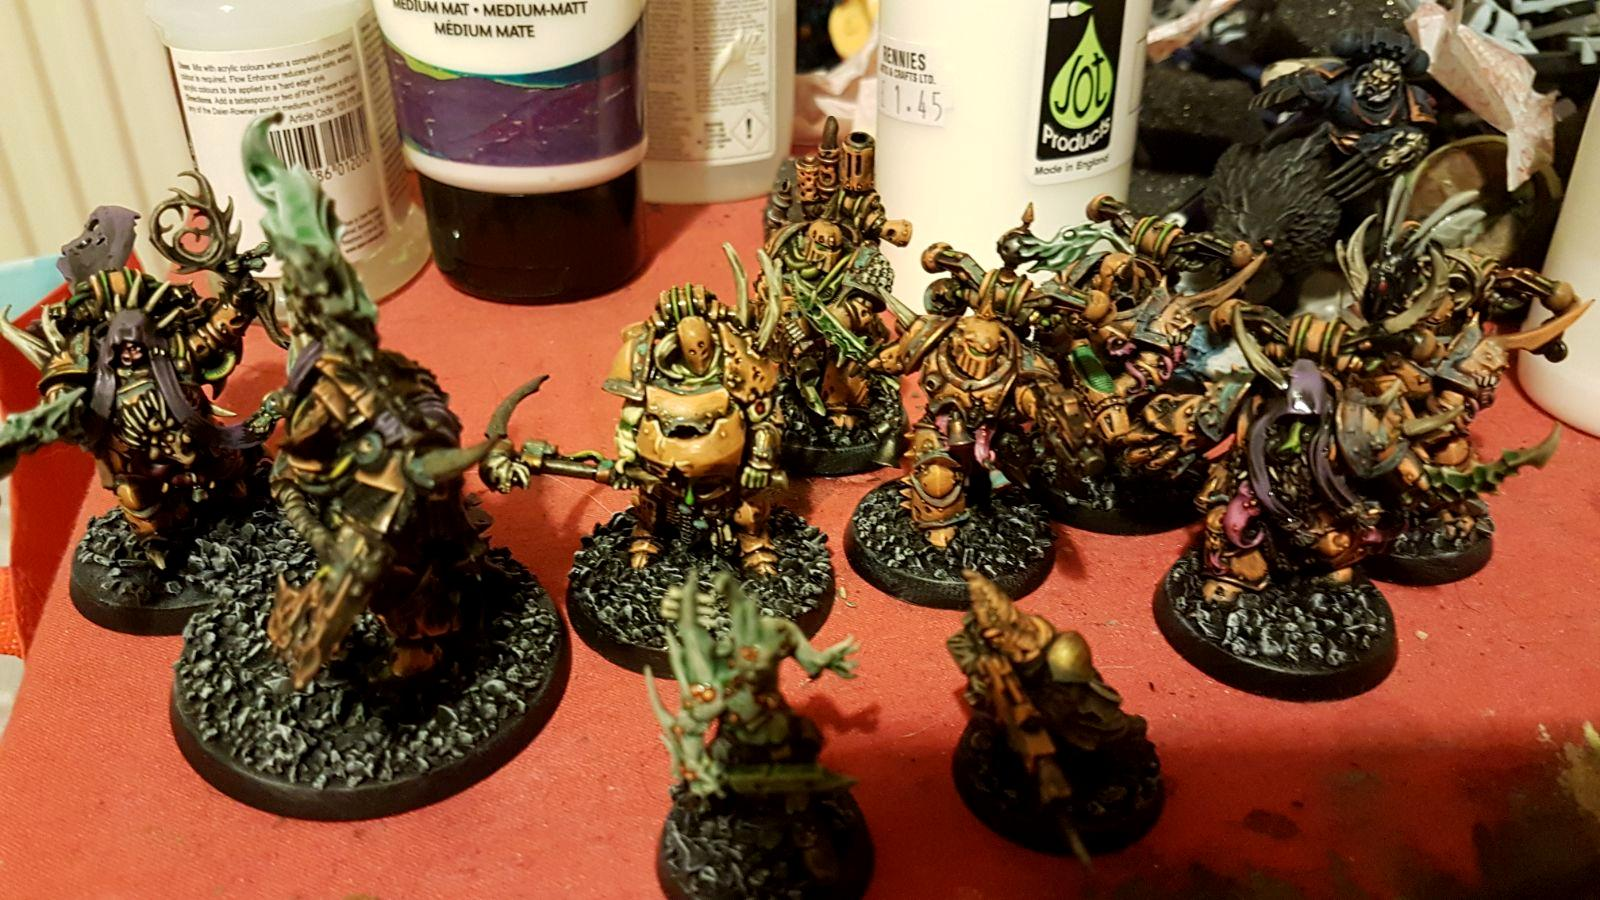 Chaos Space Marines, Conversion, Cultist, Death Guard, Foetid Bloat Drone, Nurgle, Plague Marines, Poxwalker